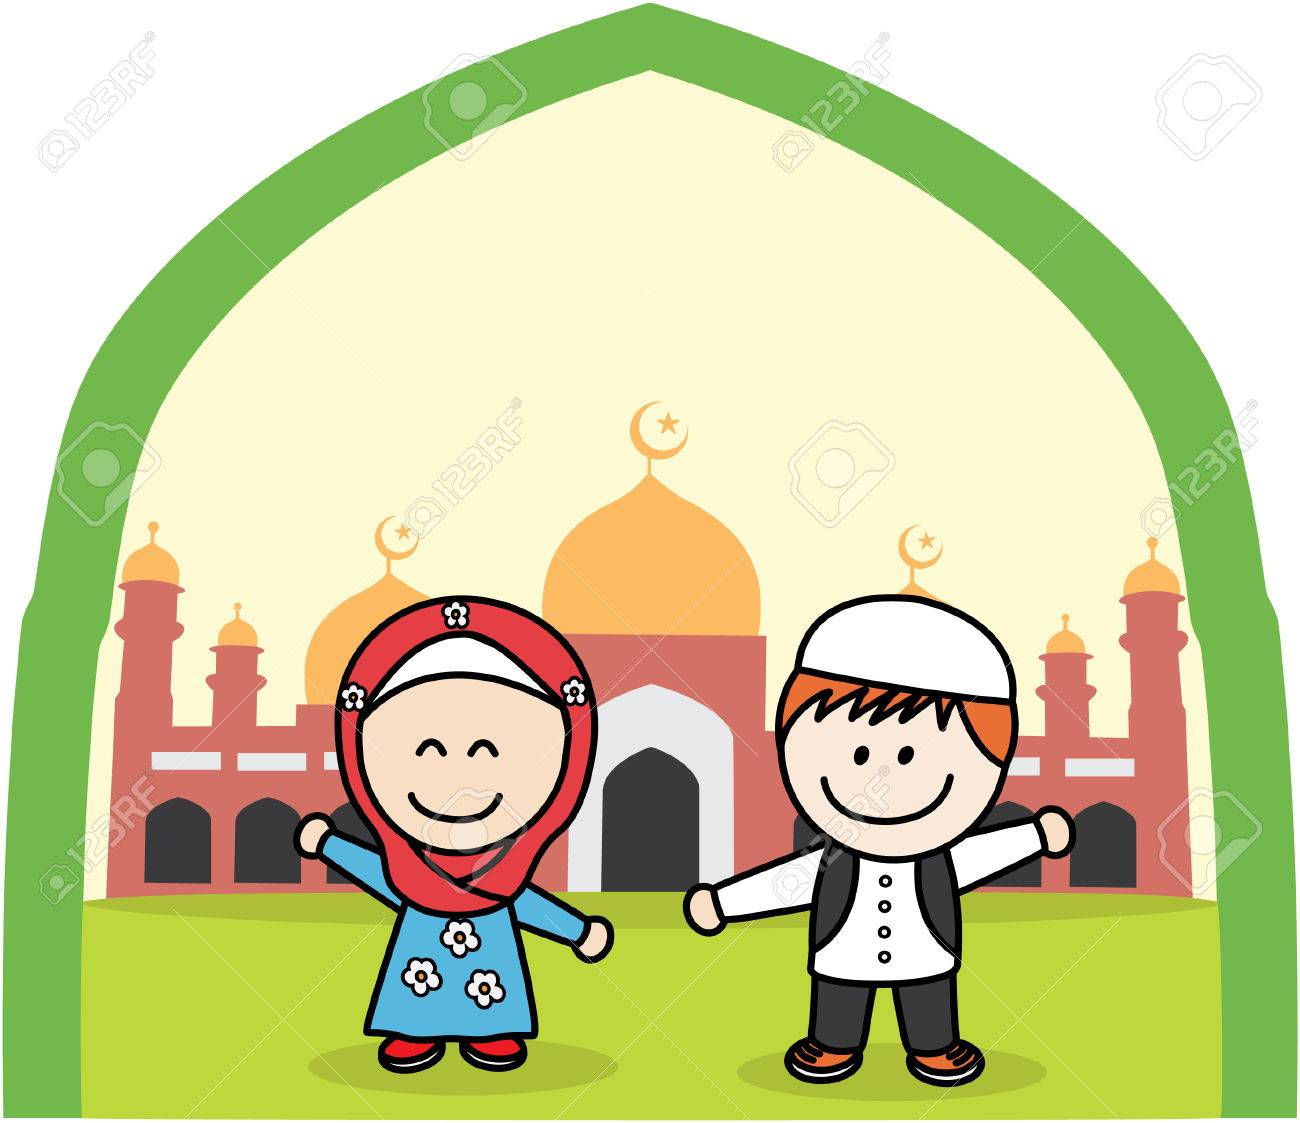 muslim kids royalty free cliparts, vectors, and stock illustration